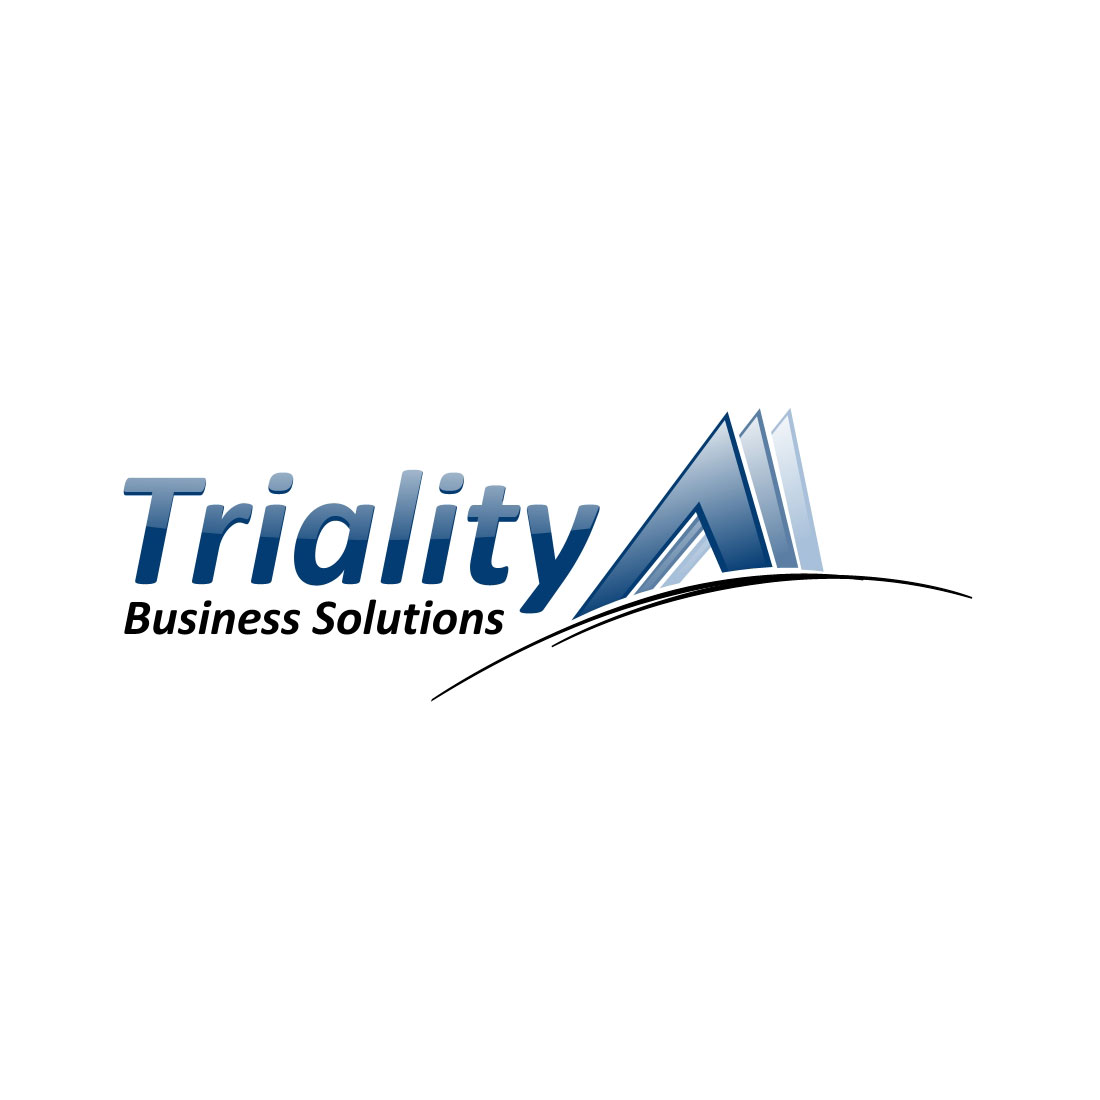 Triality Business Solutions Logo